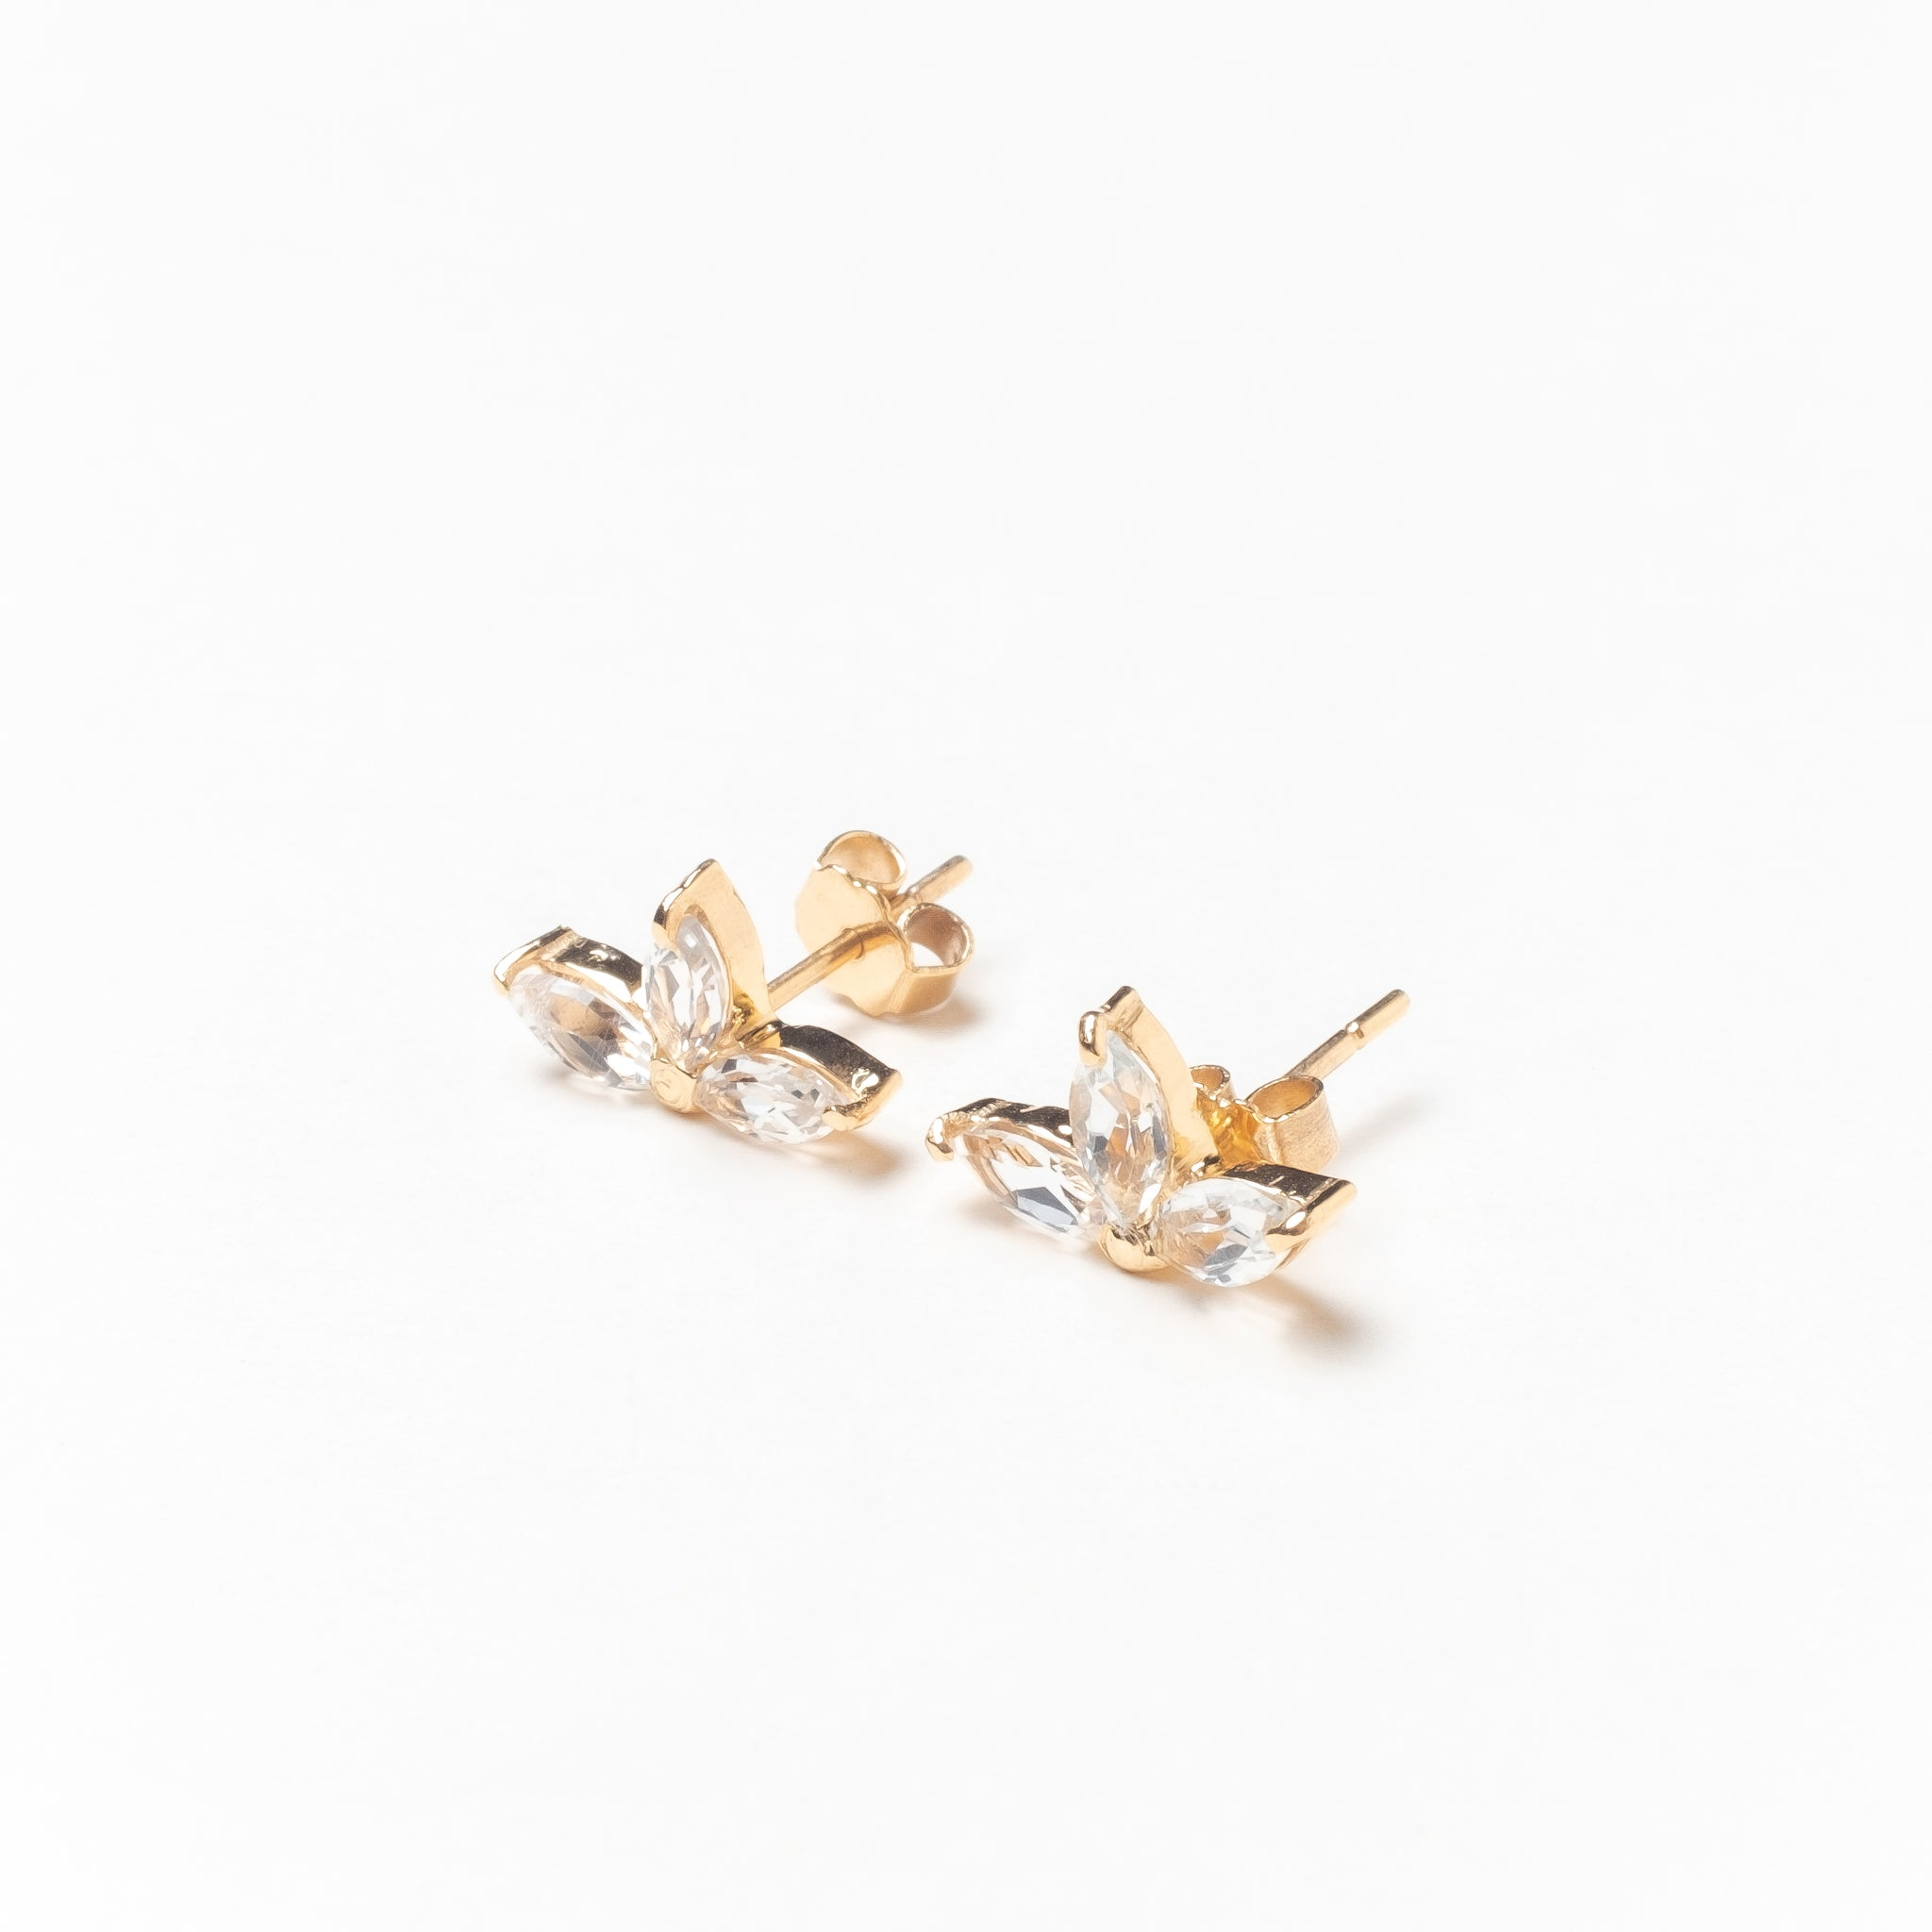 Trio of Marquise Stones Stud Earrings, Solid 14k Gold, Single / Pair (5275519385644)